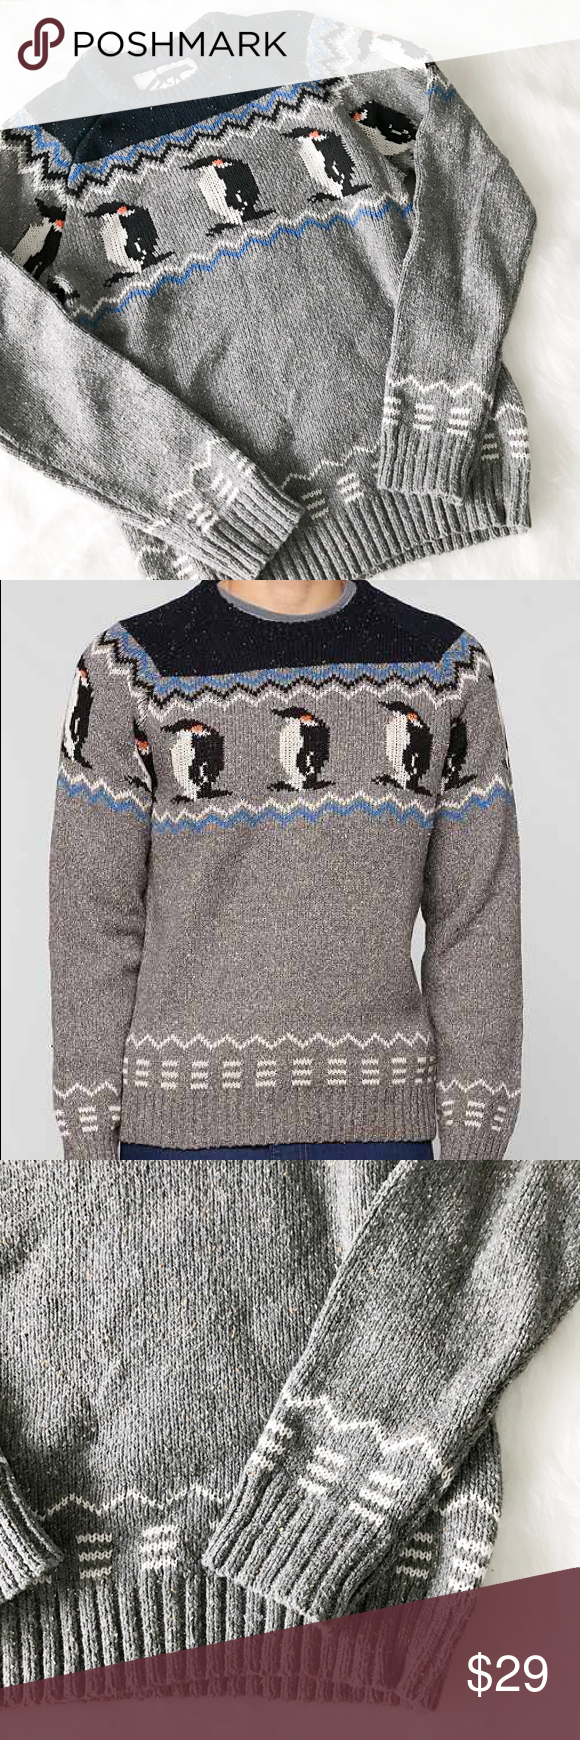 Urban Outfitters Character Hero Penguin Sweater Cotton blend fair isle patterned penguin sweater from Urban Outfitters. Brand is 'Character Hero.' Men's XS (but could fit women's small/medium). Great condition. No pilling and no stains. --------- Perfect pullover sweater from Character Hero! Warm blended cotton construction topped with an allover Fair Isle penguin print. Complete with a banded crew-neck, hem and cuffs for a perfect fit. Urban Outfitters Sweaters Crewneck